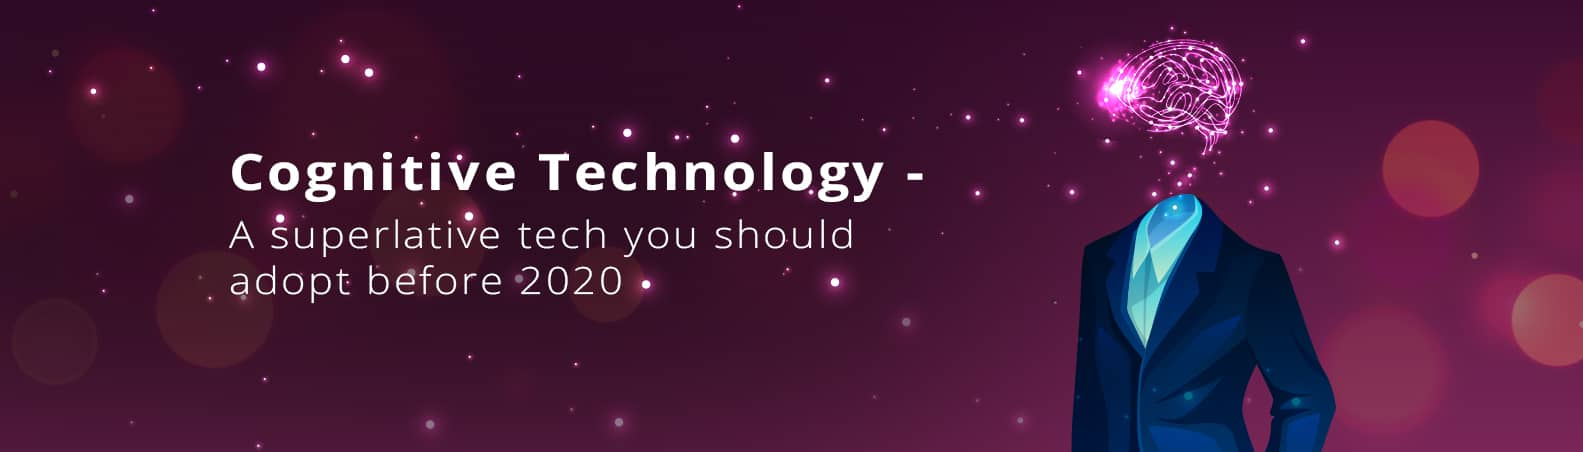 Cognitive Technology - A Superlative Tech you should adopt before 2020